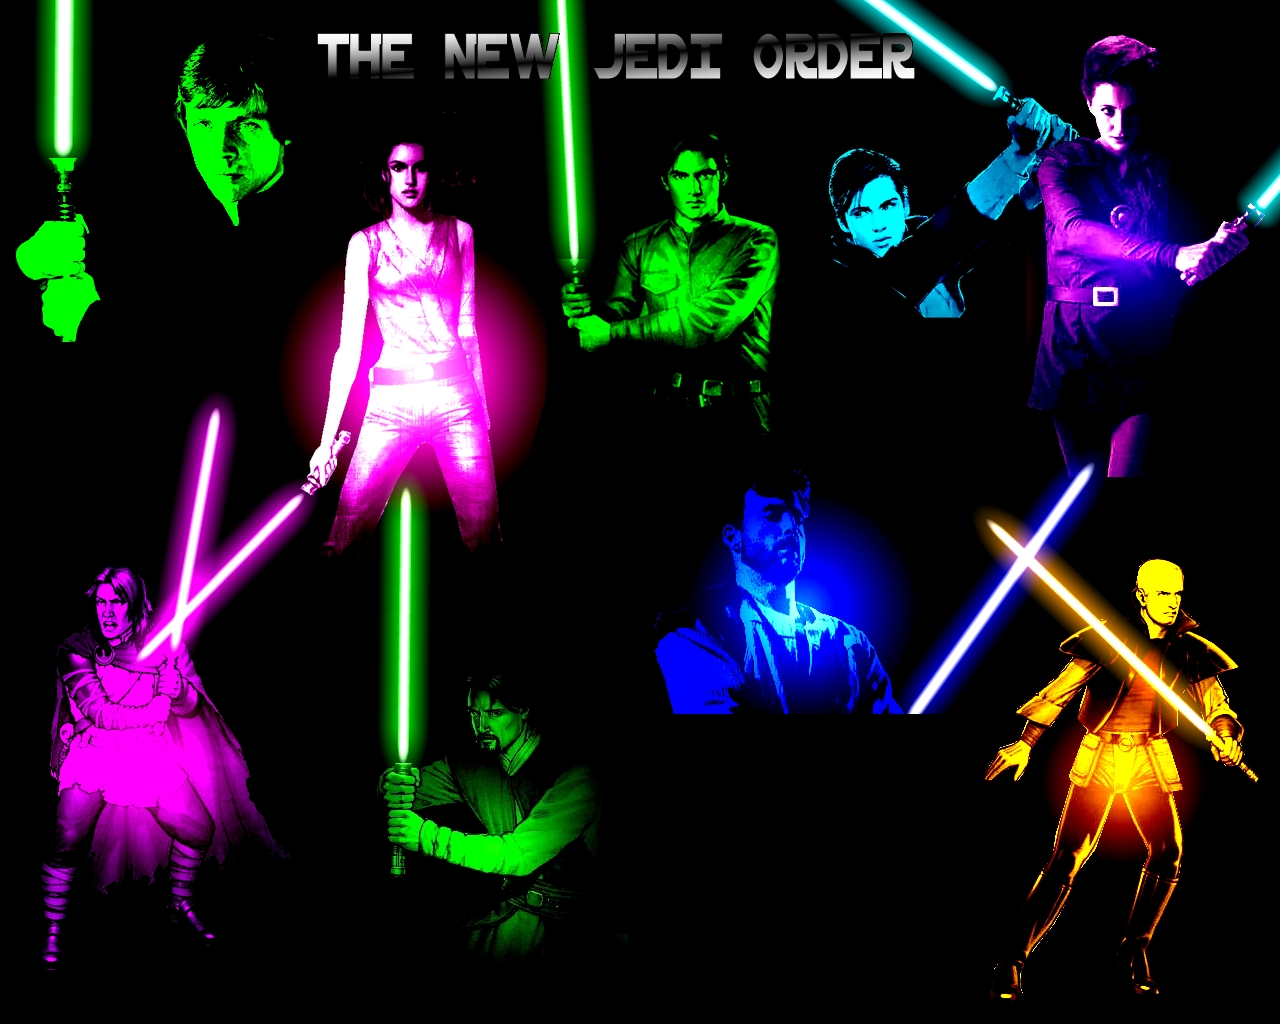 Jedi Order Wallpaper New Final By 1280x1024